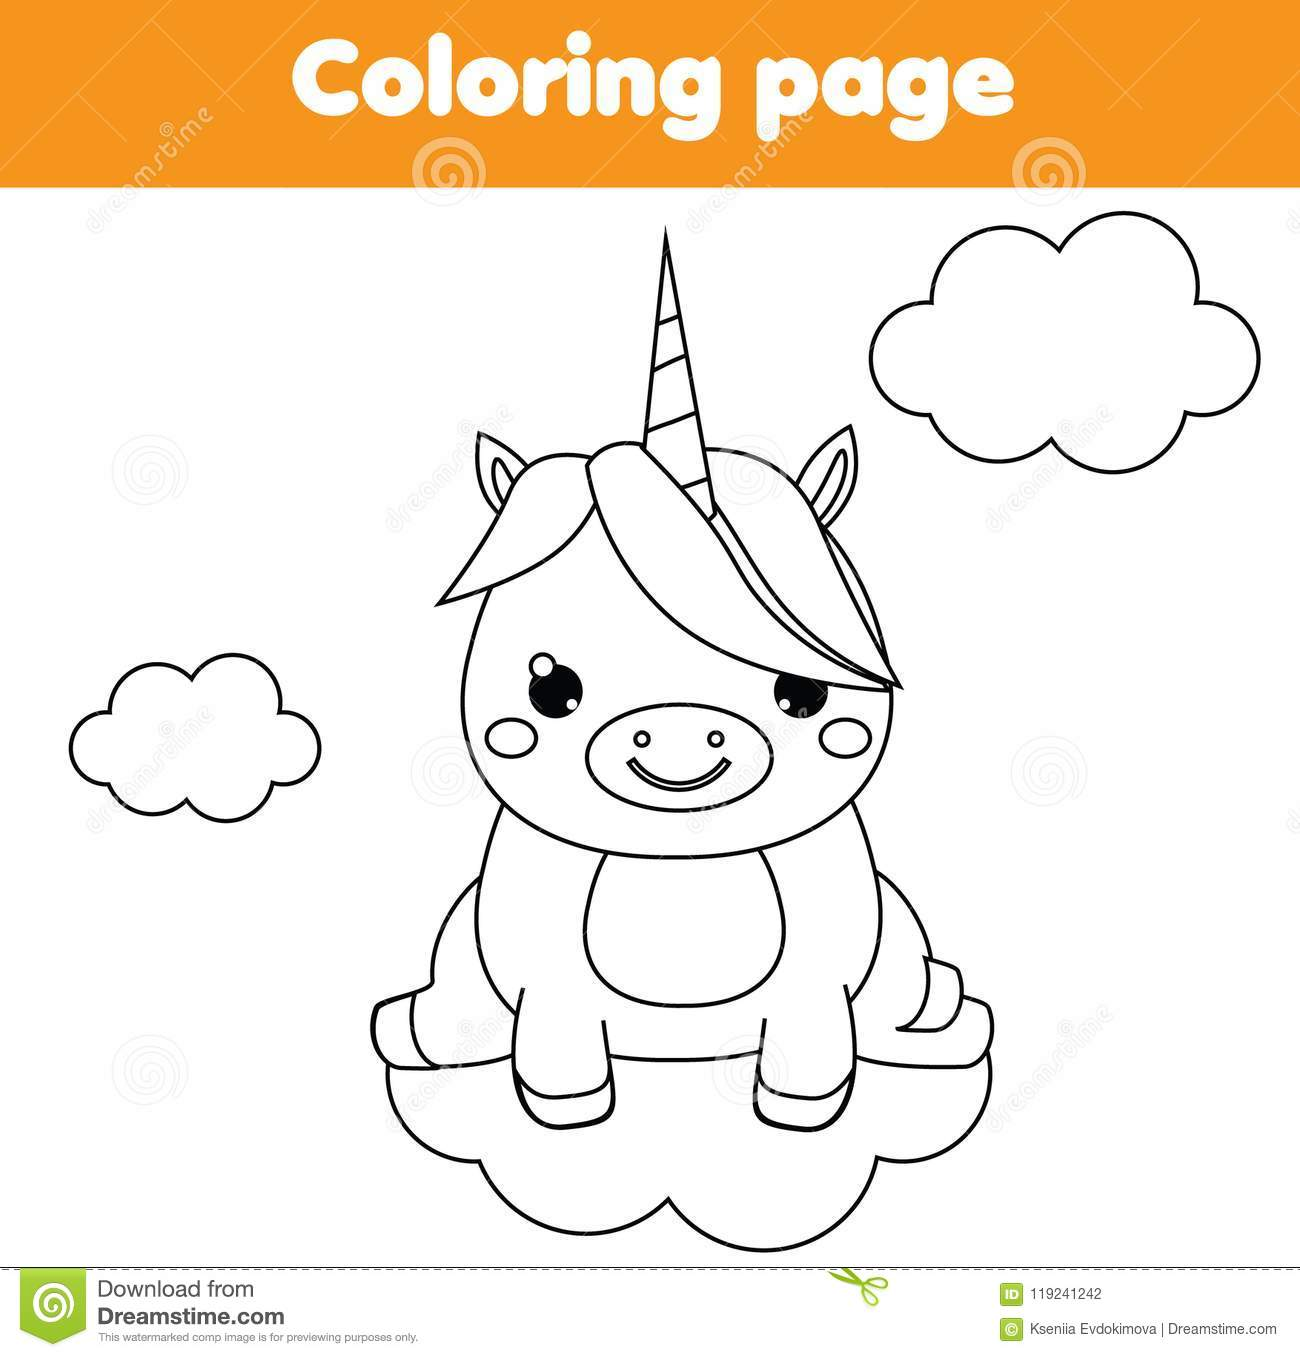 Unicorn coloring page educational children game drawing kids printable activity